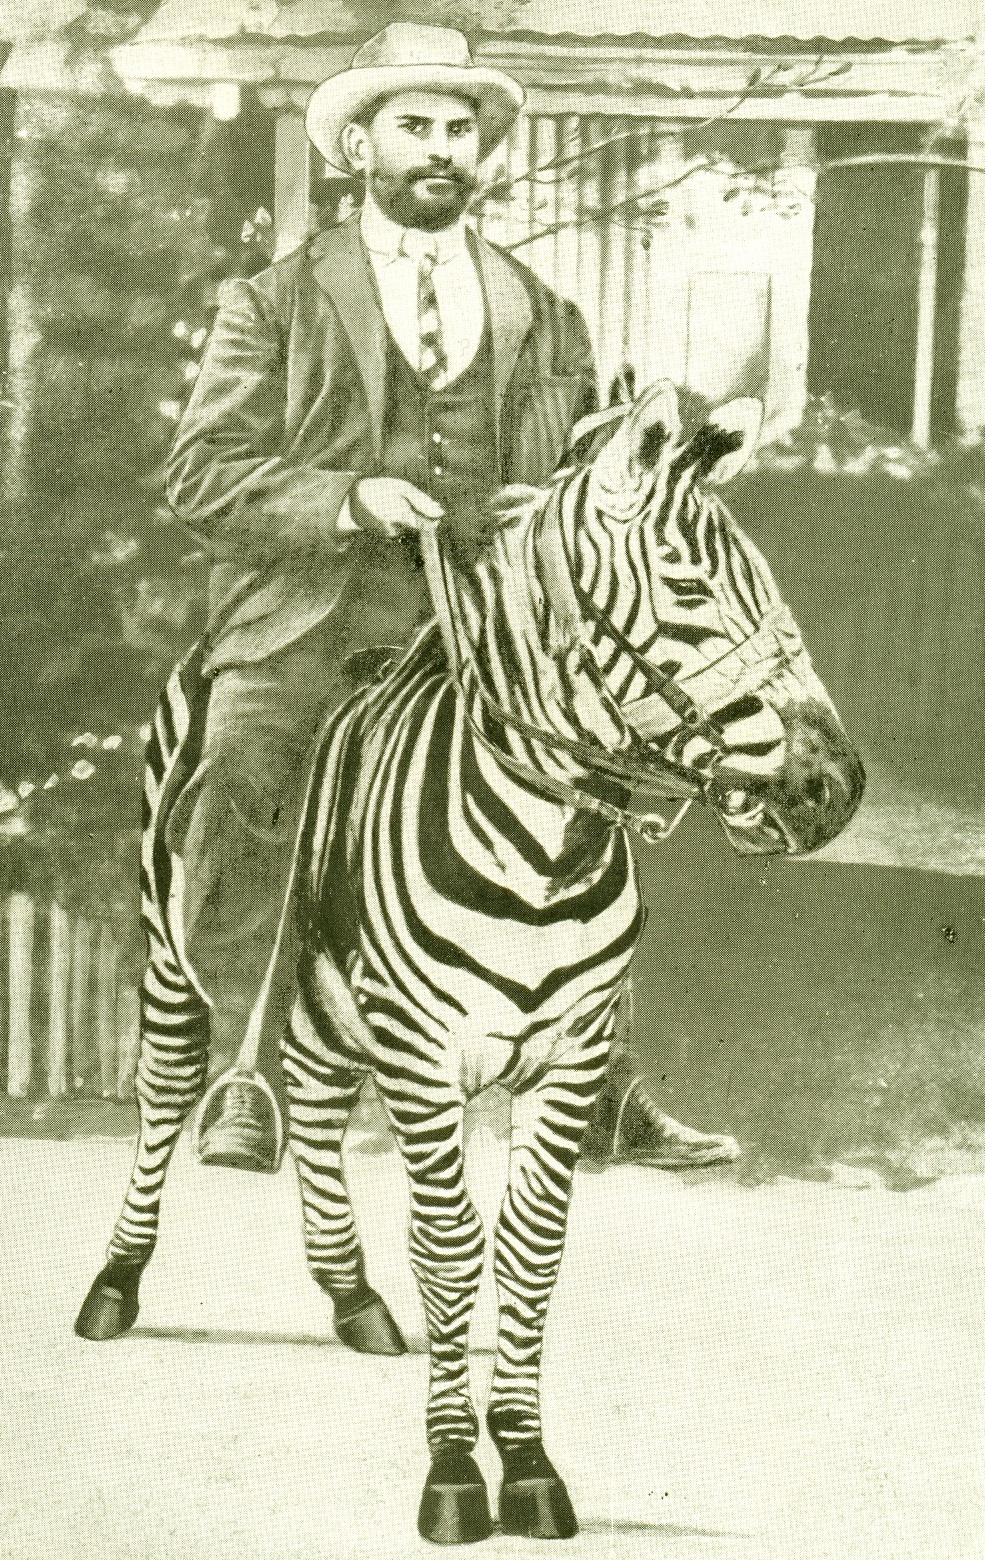 Dr R A Riberio riding a zebra tamed by him in 1907